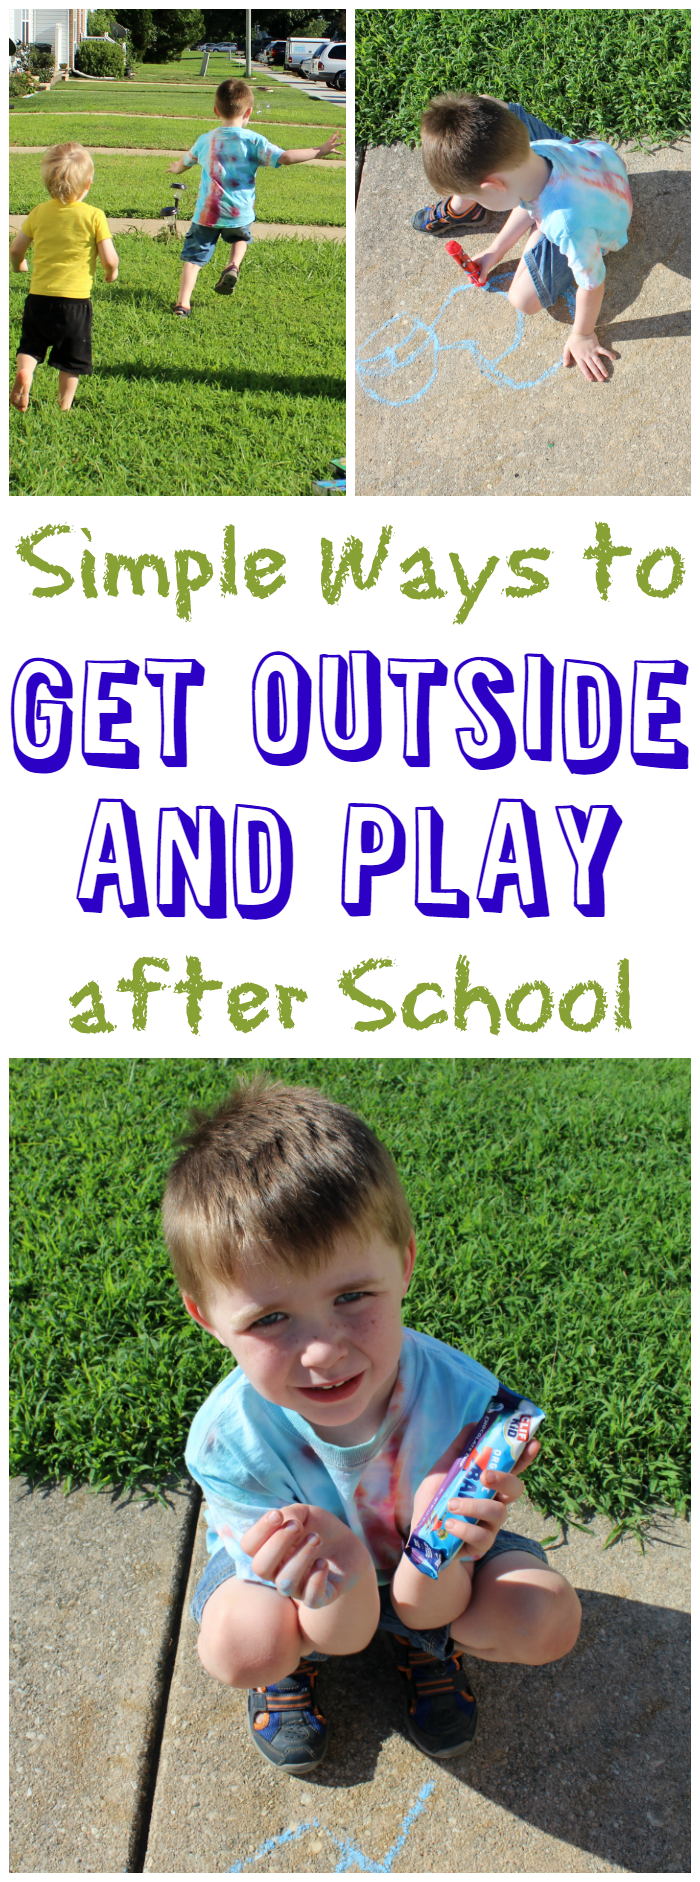 It's important to get outside and play after school! Let the kids get some energy out with these simple ways to do just that!